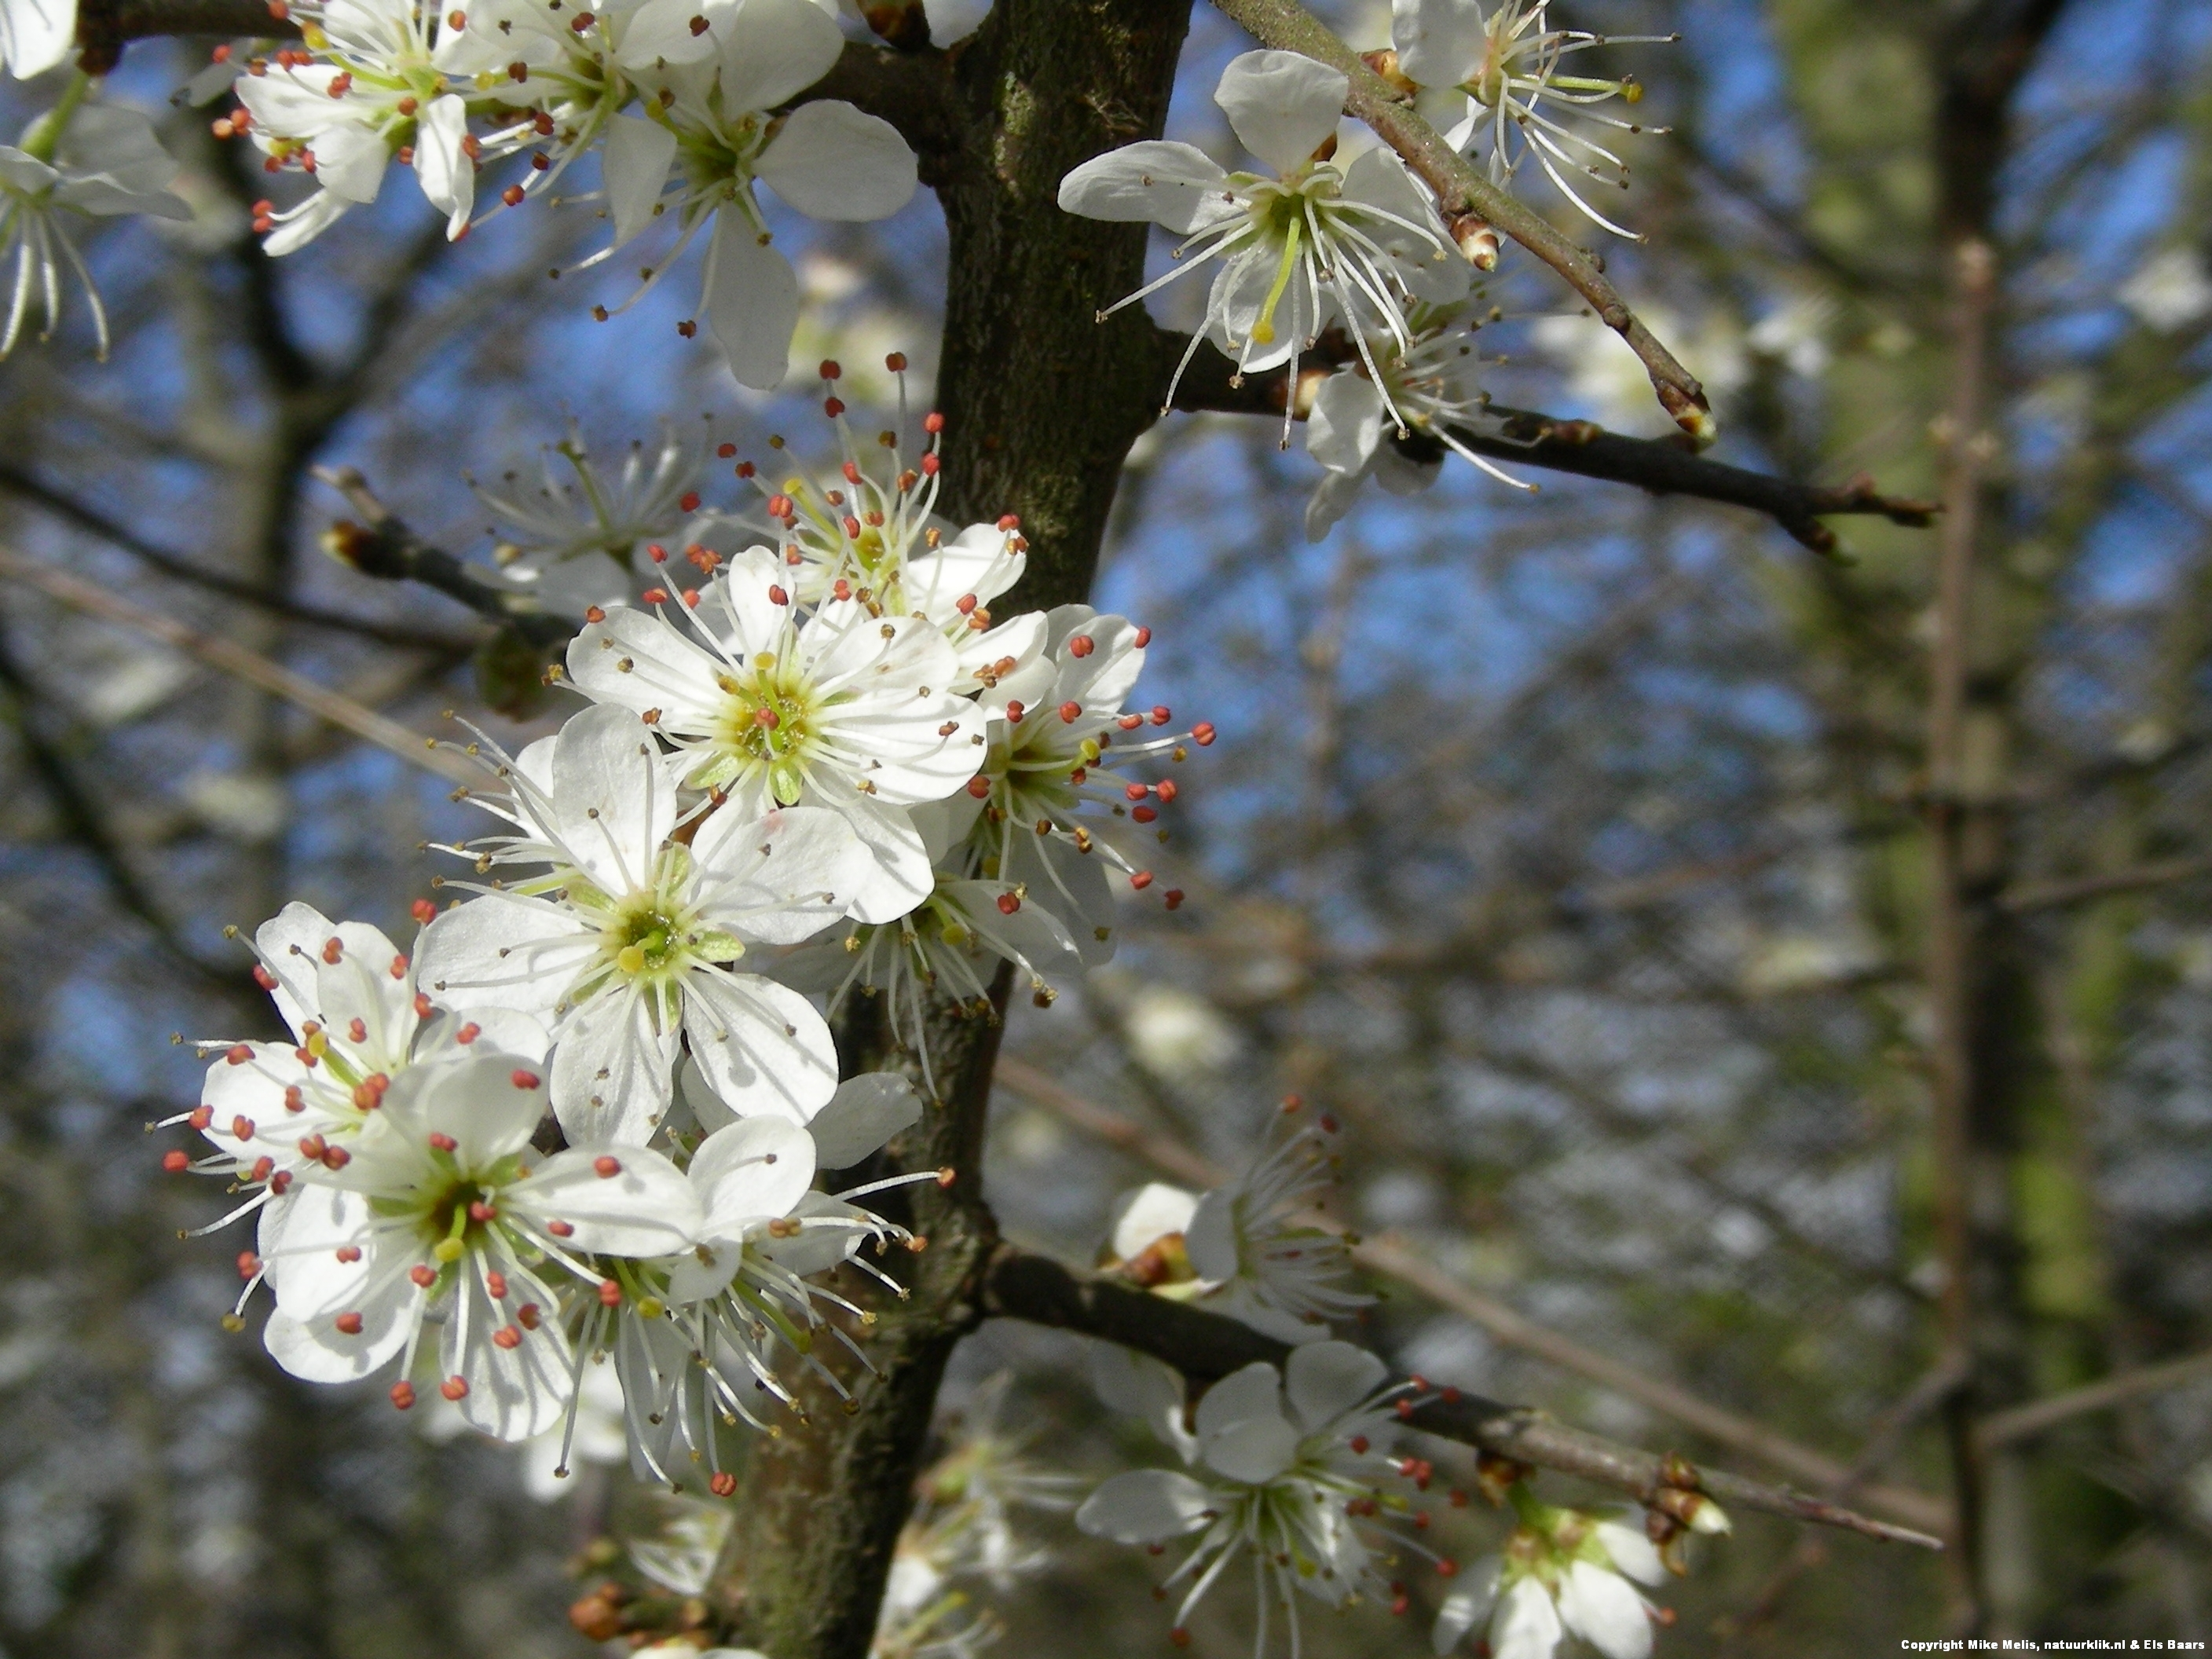 Why the blackthorn has white flowers (049) – Natuurverhalen